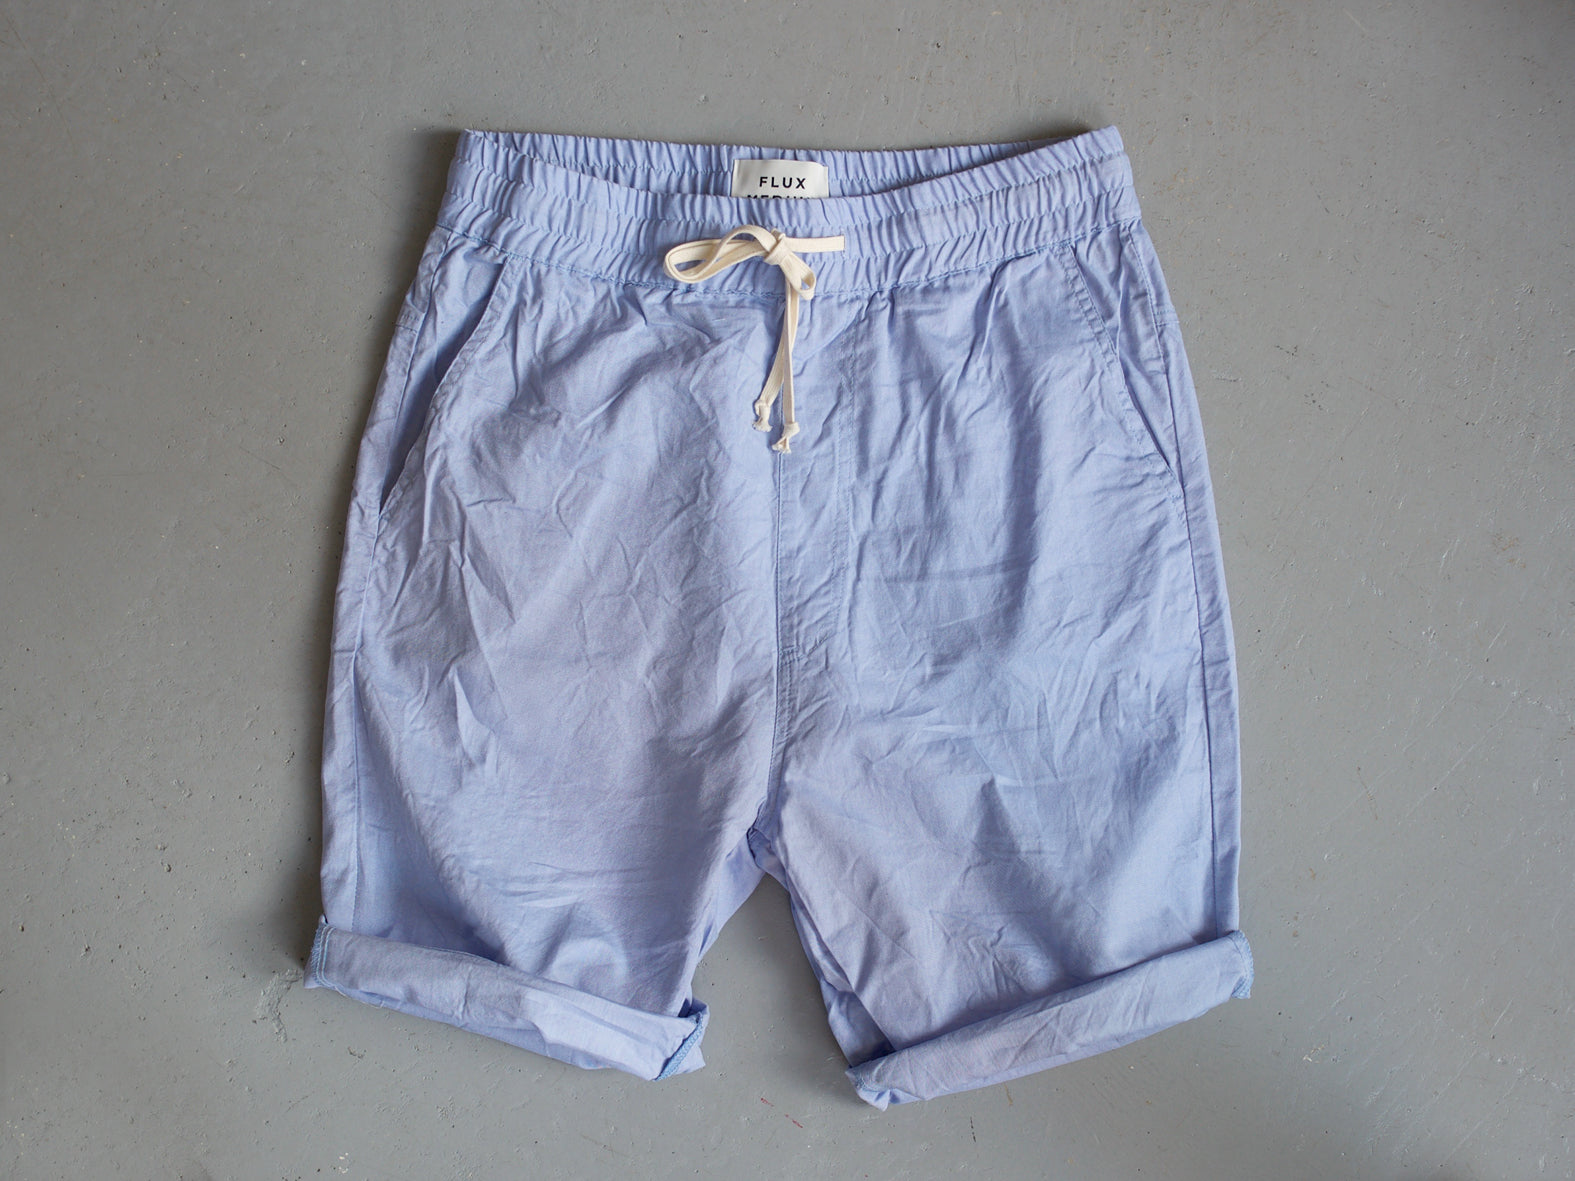 EAST COAST. SKY BLUE - COTTON SHORTS